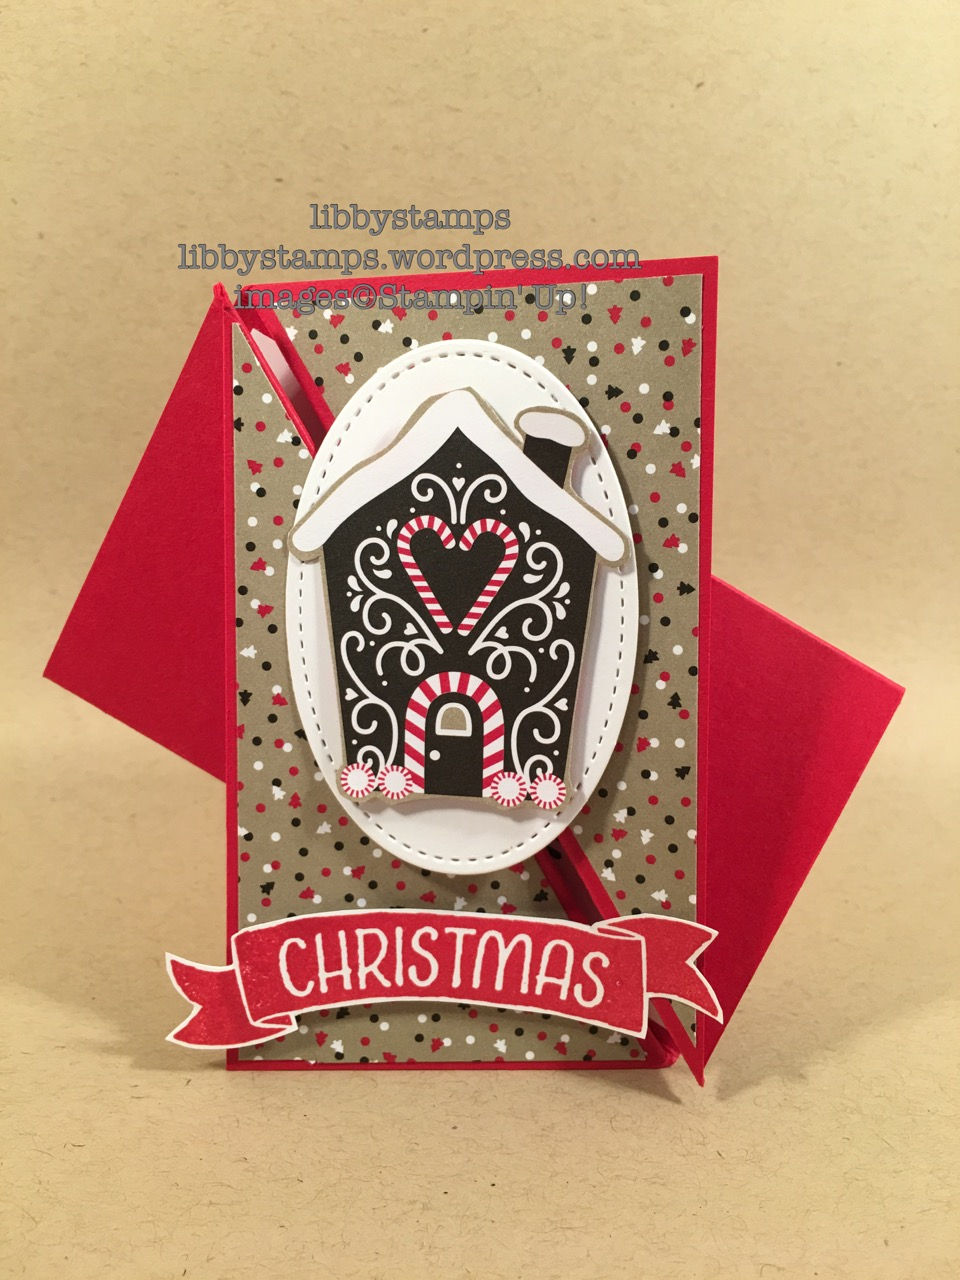 libbystamps, stampin up, Stitched Shapes Framelits, Candy Cane Lane, Suite Seasons, Time of Year, Twist Gate Fold